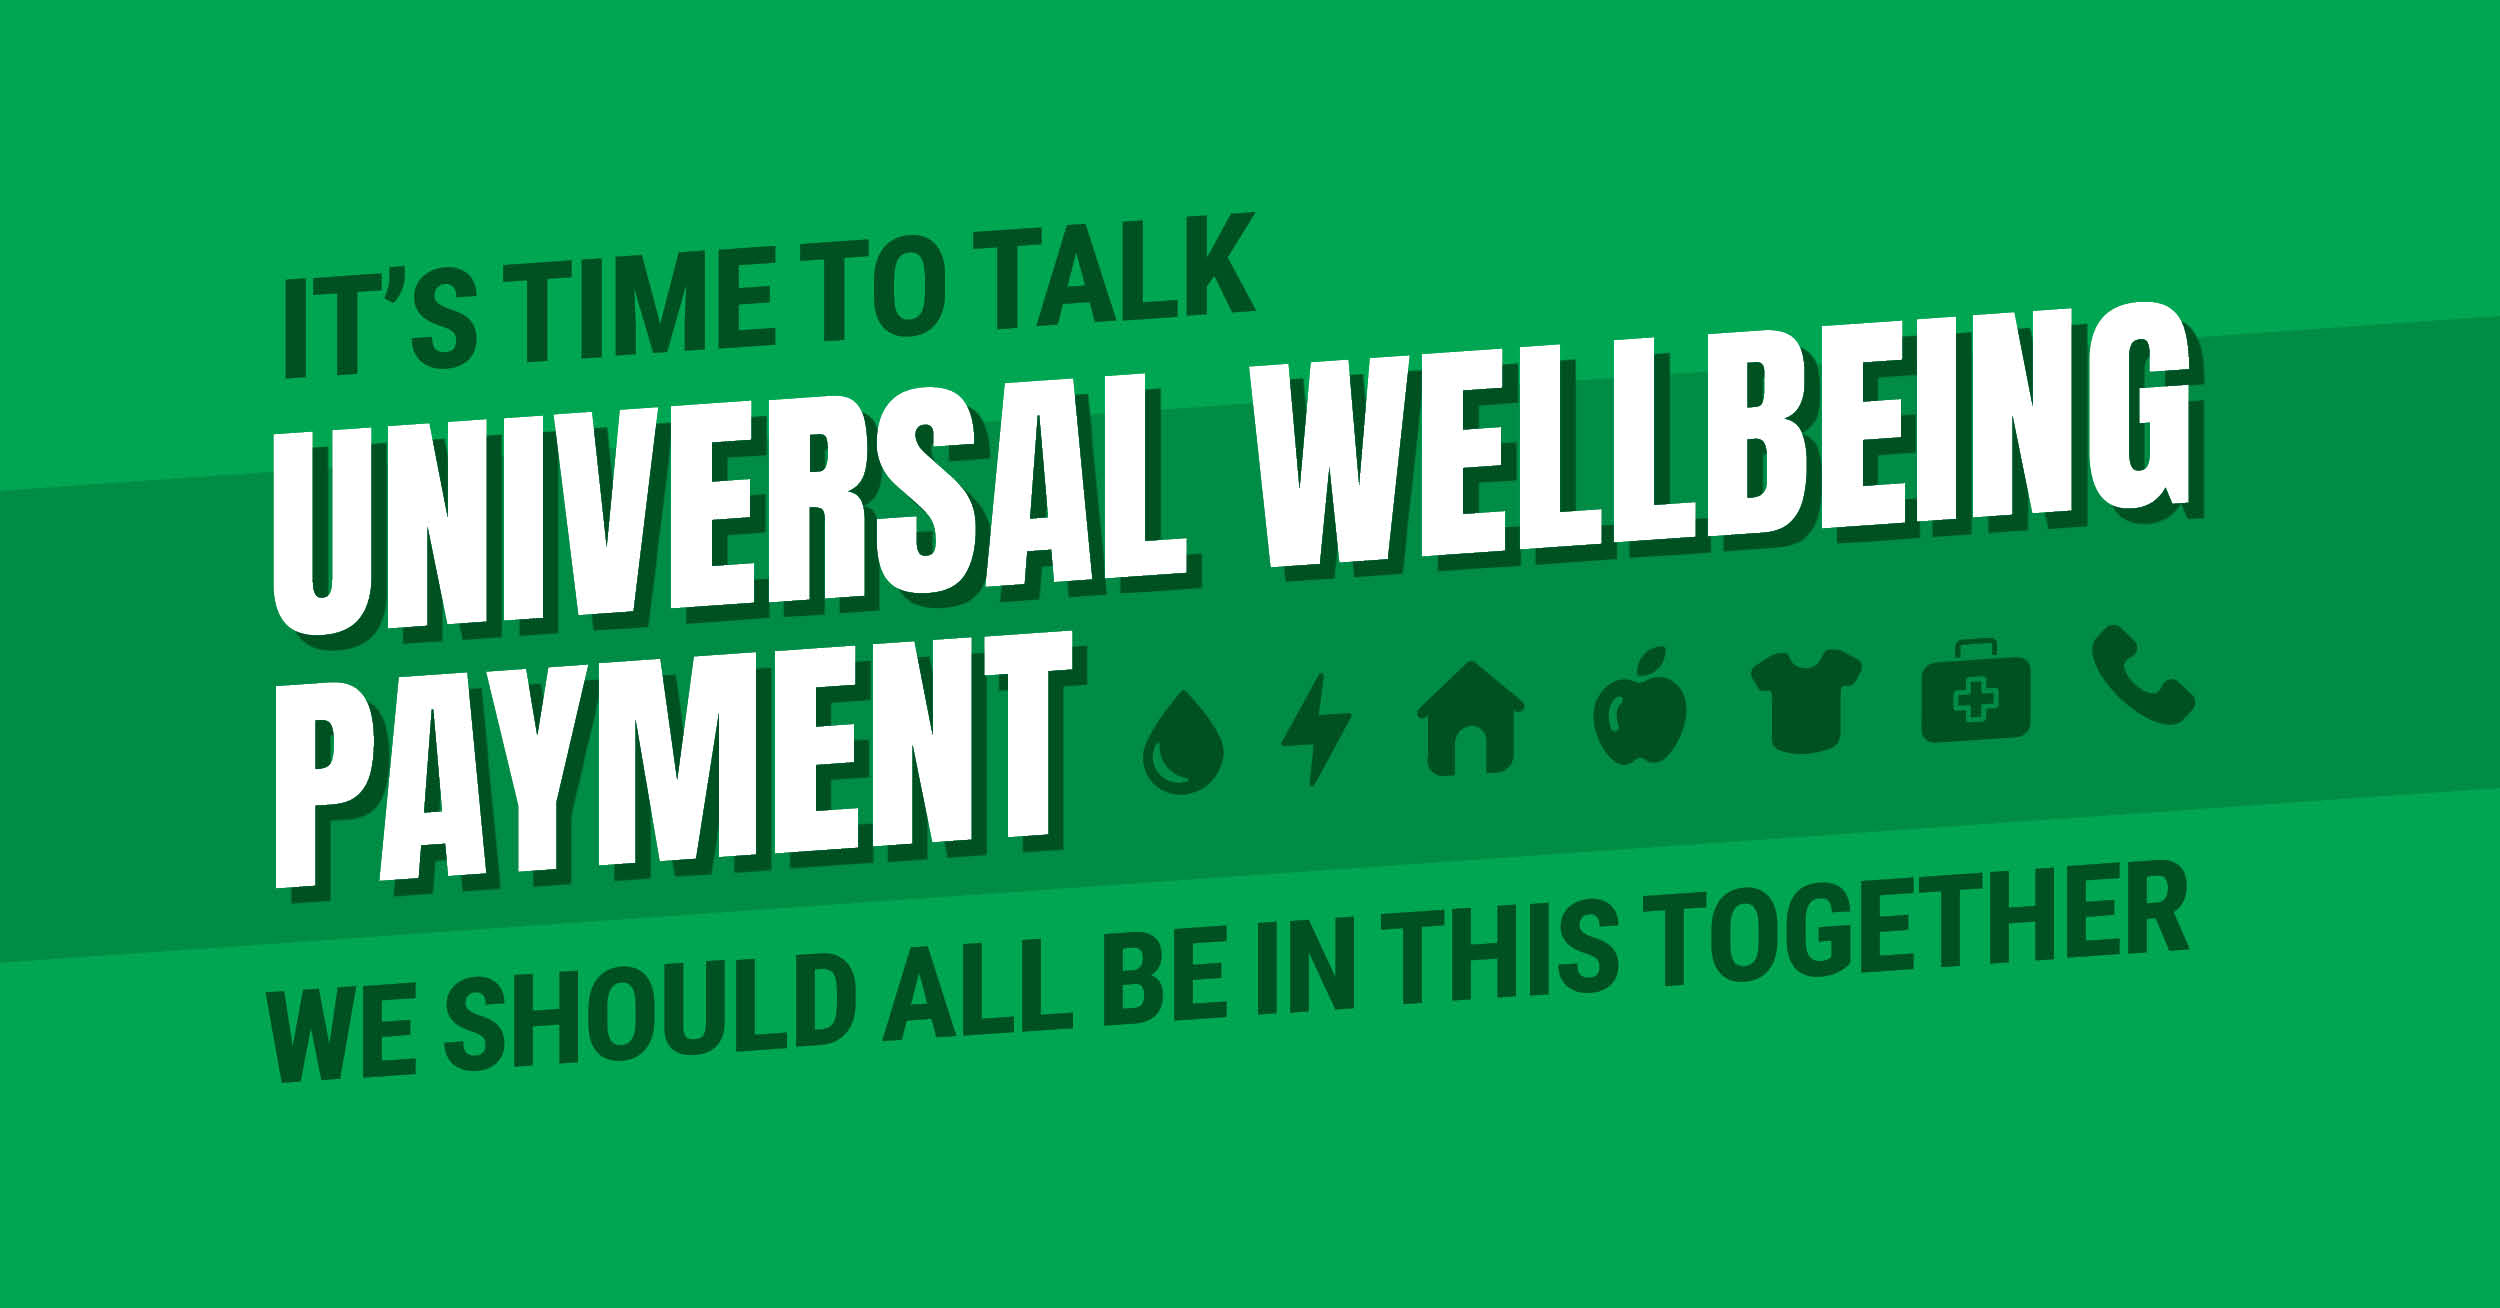 Time To Talk: Universal Wellbeing Payment